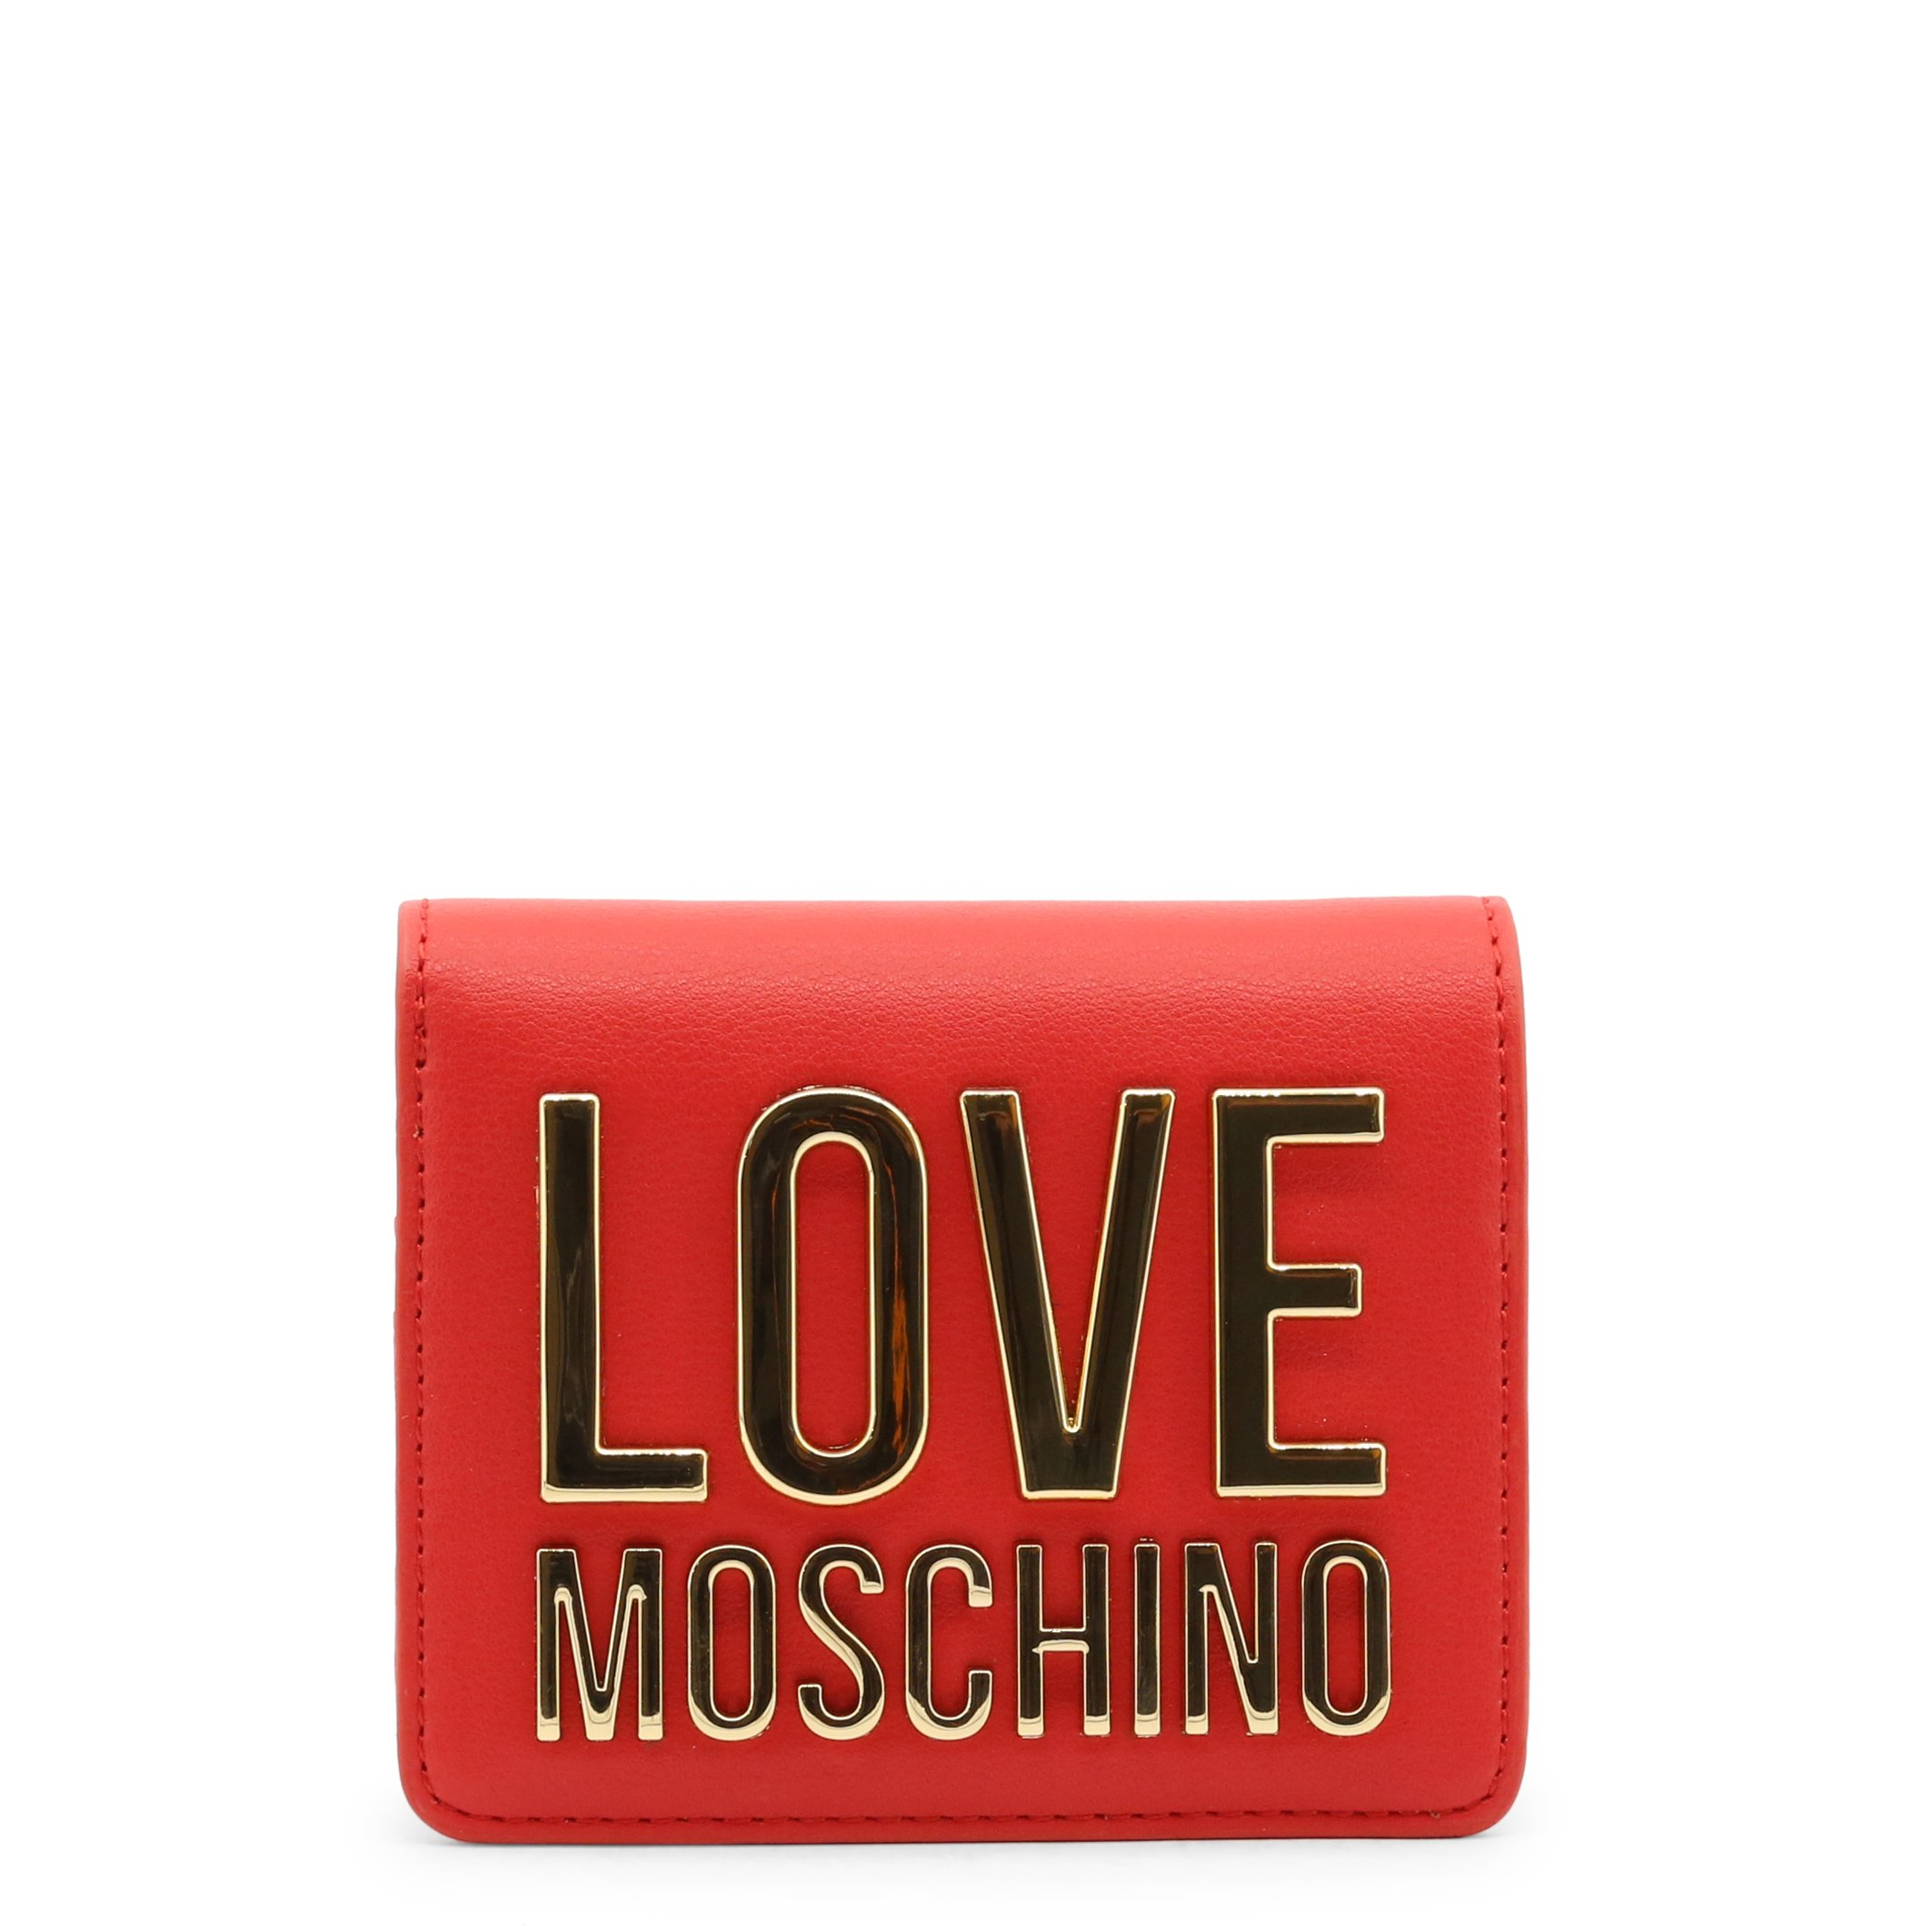 Love Moschino Women's Wallet Various Colours JC5612PP1DLJ0 - red NOSIZE